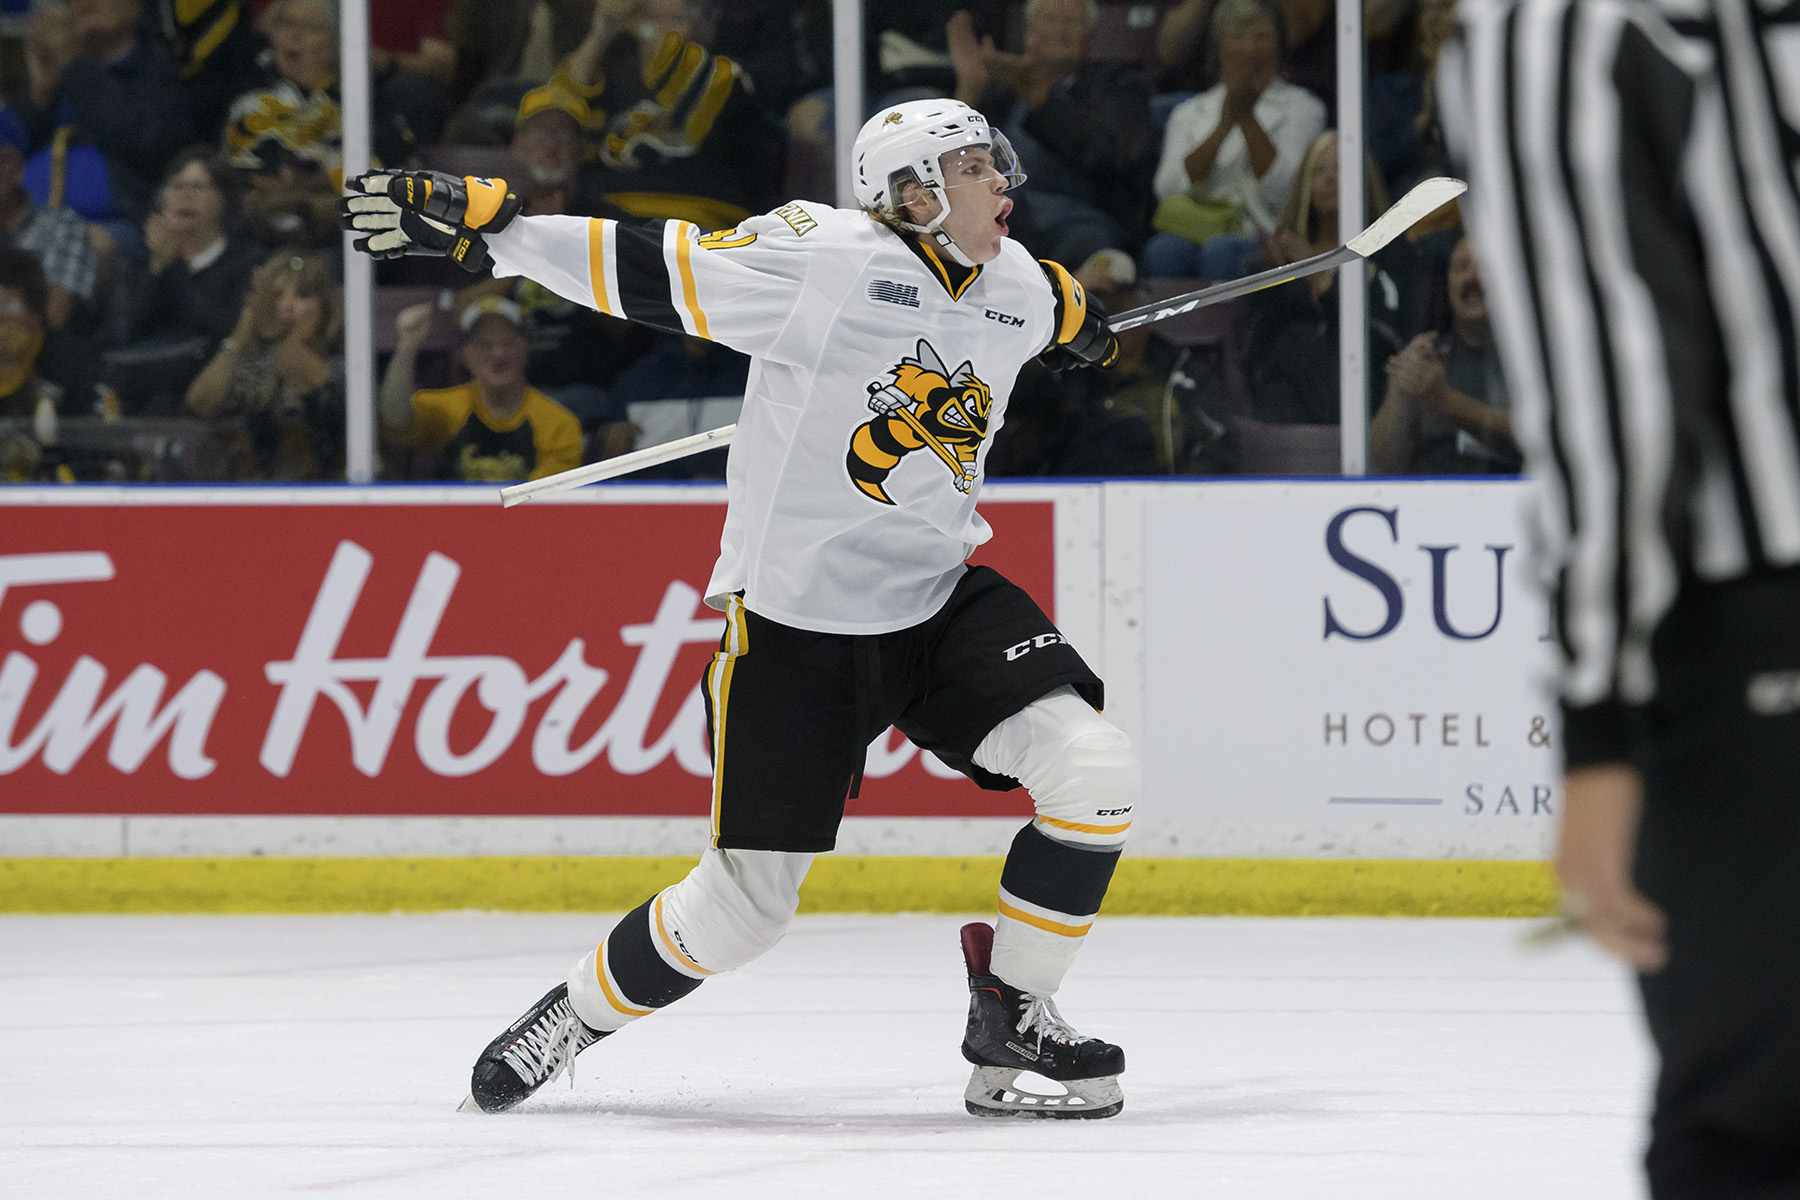 Sam Bitten, acquired before the season from Ottawa, scores the Sting's first goal of the 2019-20 campaign Sept. 20, 2019 (Photo courtesy of Metcalfe Photography)